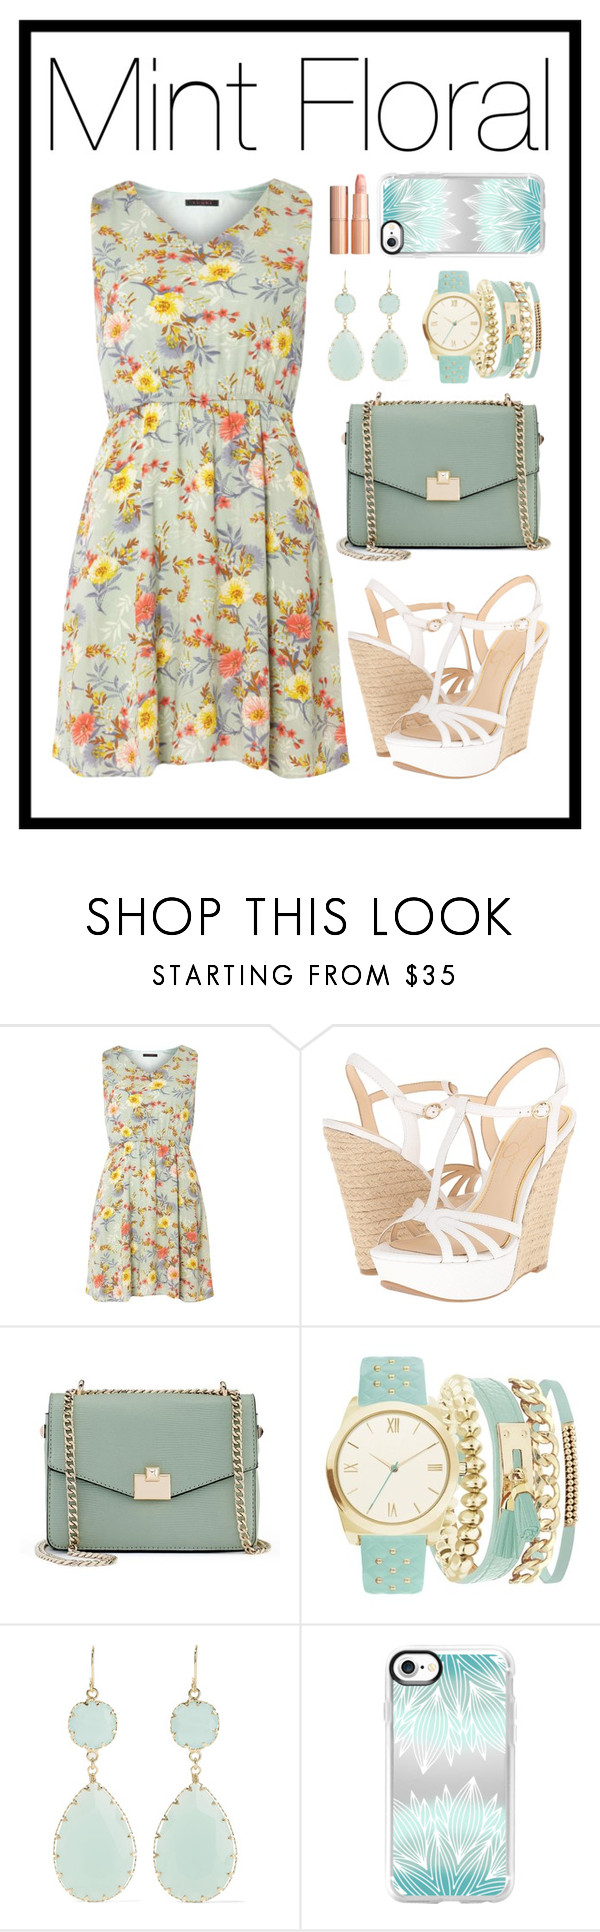 """Mint Spring"" by stella-patricia ❤ liked on Polyvore featuring Tenki, Jessica Simpson, Jennifer Lopez, A.X.N.Y., Kenneth Jay Lane, Casetify and Charlotte Tilbury"